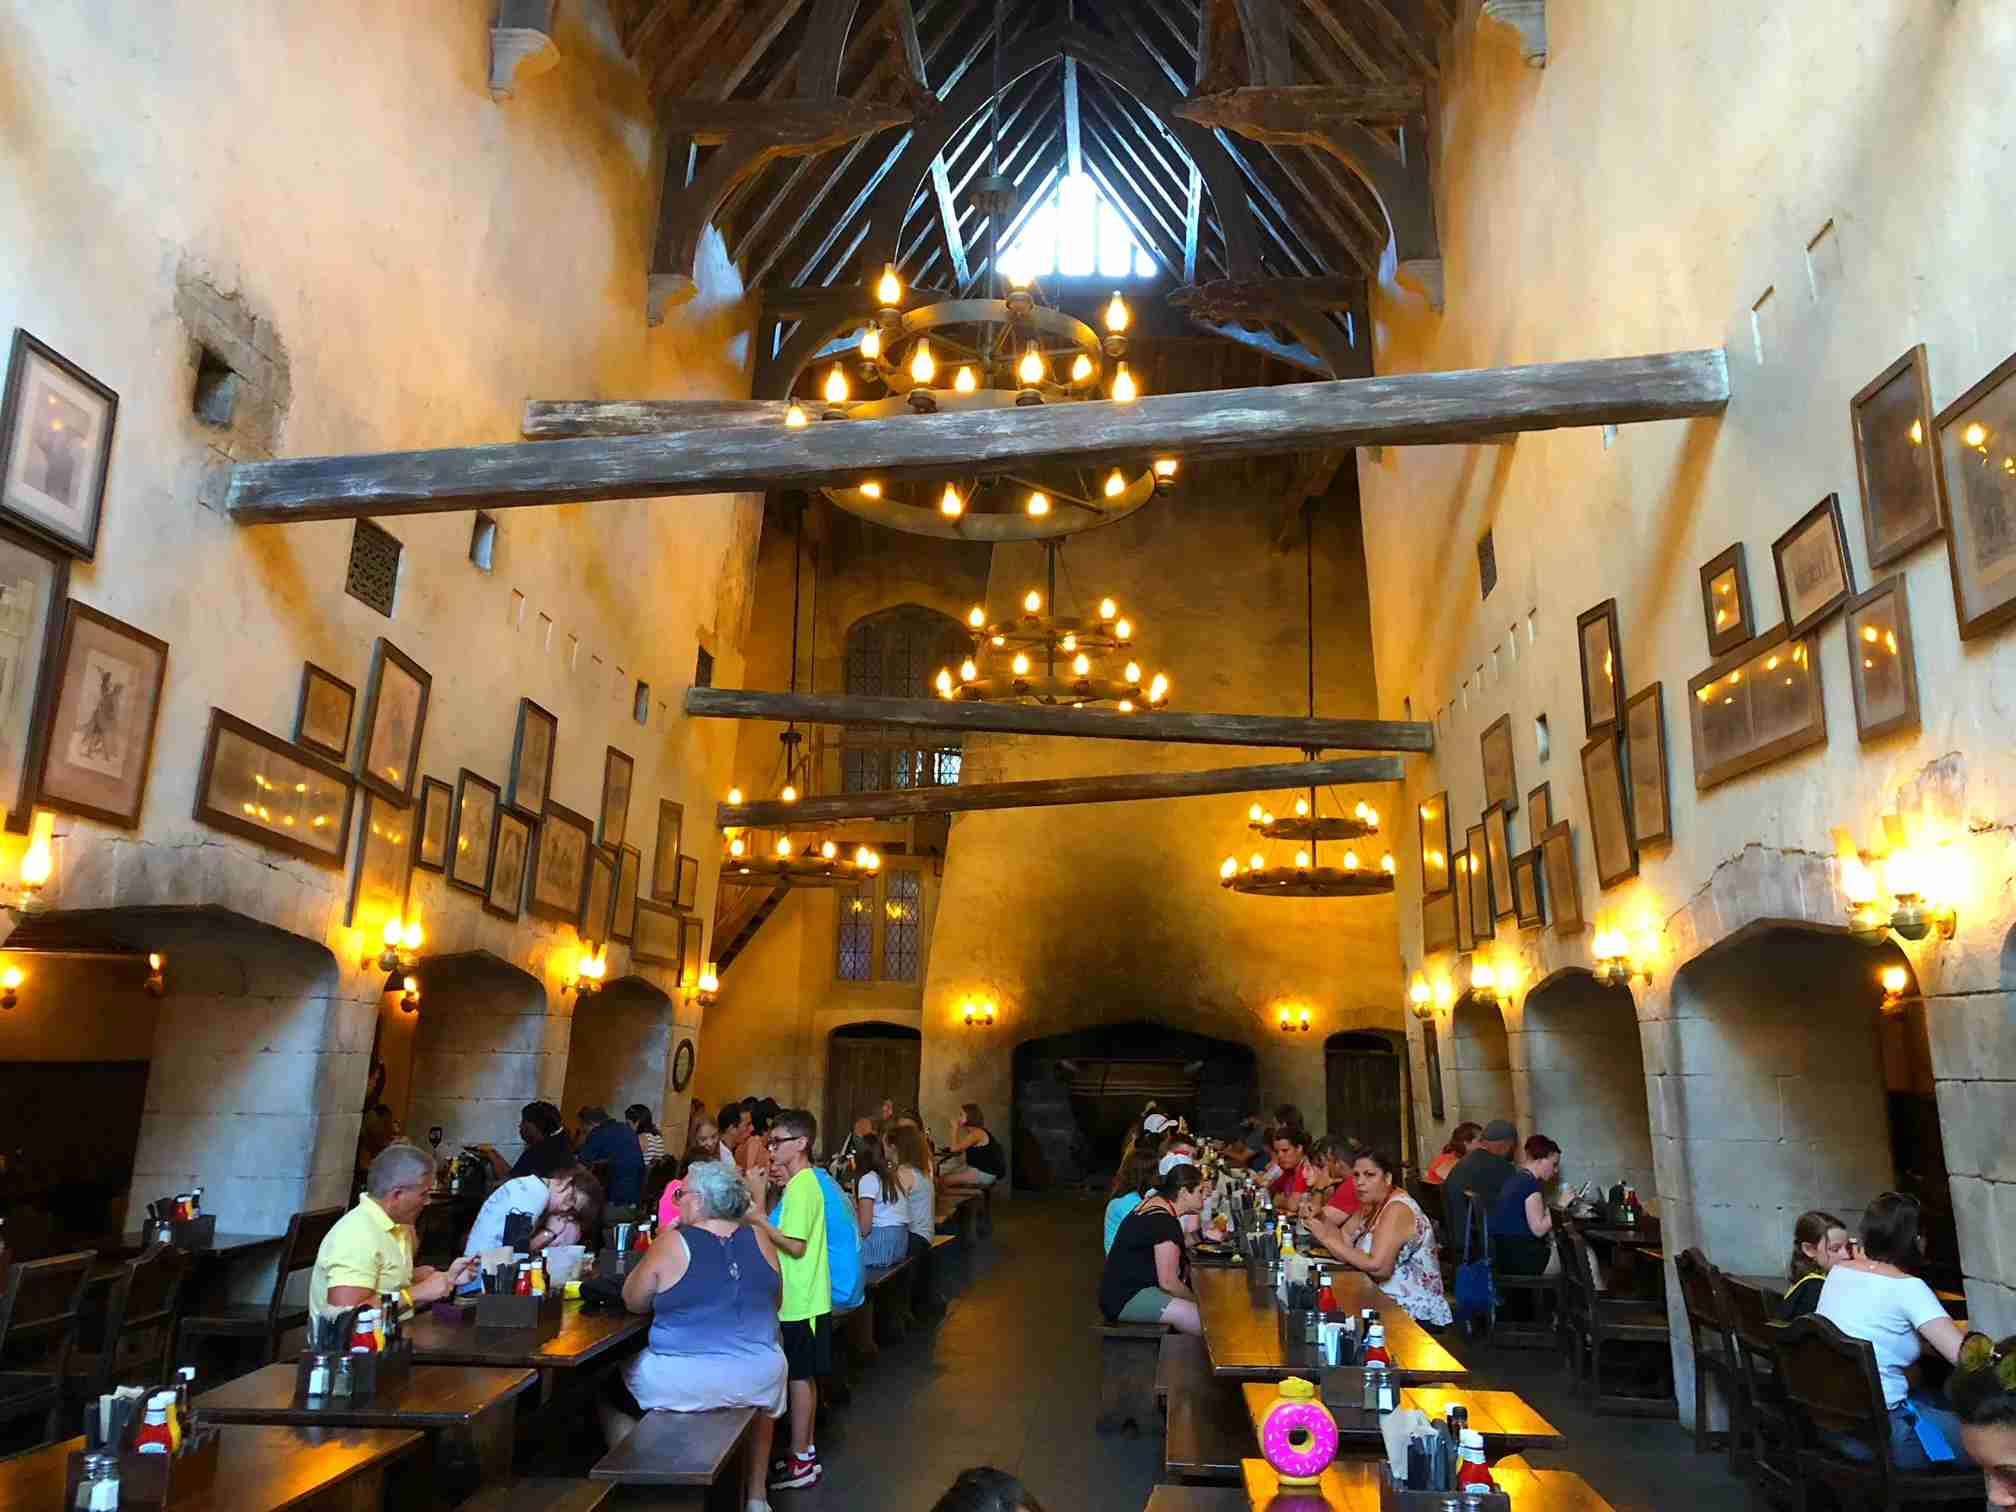 We ate in both Harry Potter restaurants with no reservations and no waits